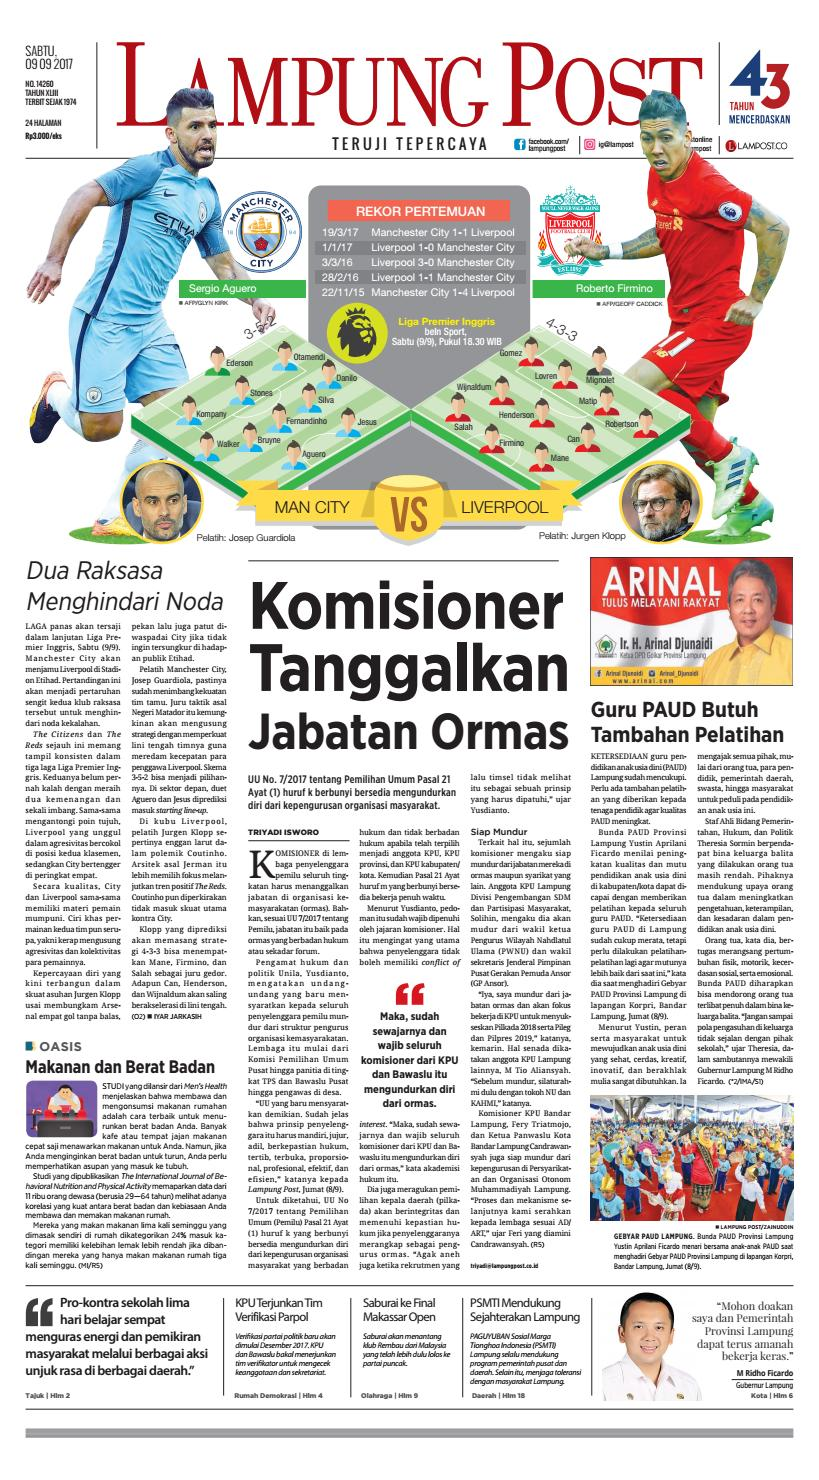 Lampung Post Sabtu 2 Desember 2017 By Lampung Post Issuu # Muebles Bega Murcia